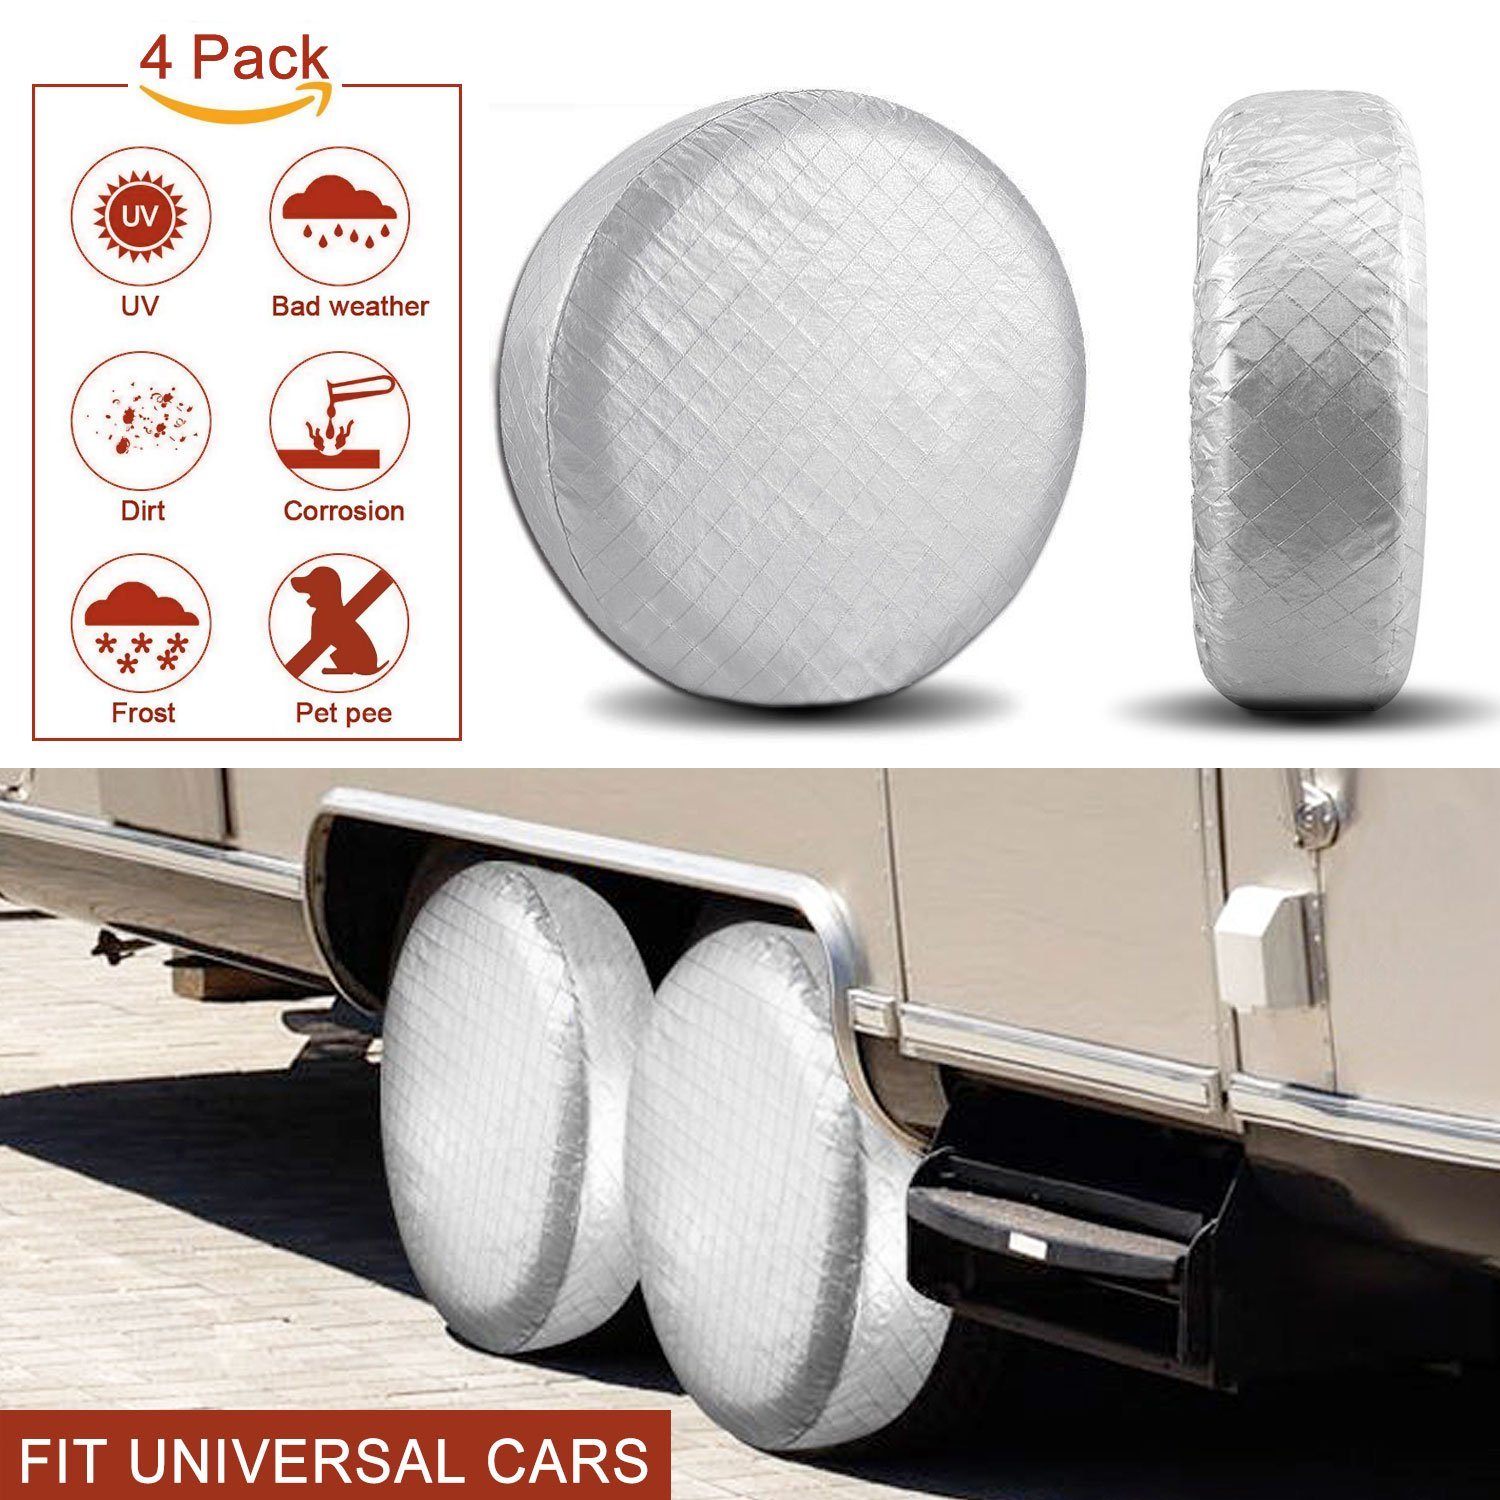 YBB Set of 4 for RV Wheel & Tire Covers Suit for Camper, Travel Trailer Tire Covers, Fits 33'' to 35'' Tire Diameters, Weatherproof, Dust, Waterproof, Sun Tire Protectors (33-35 inches)